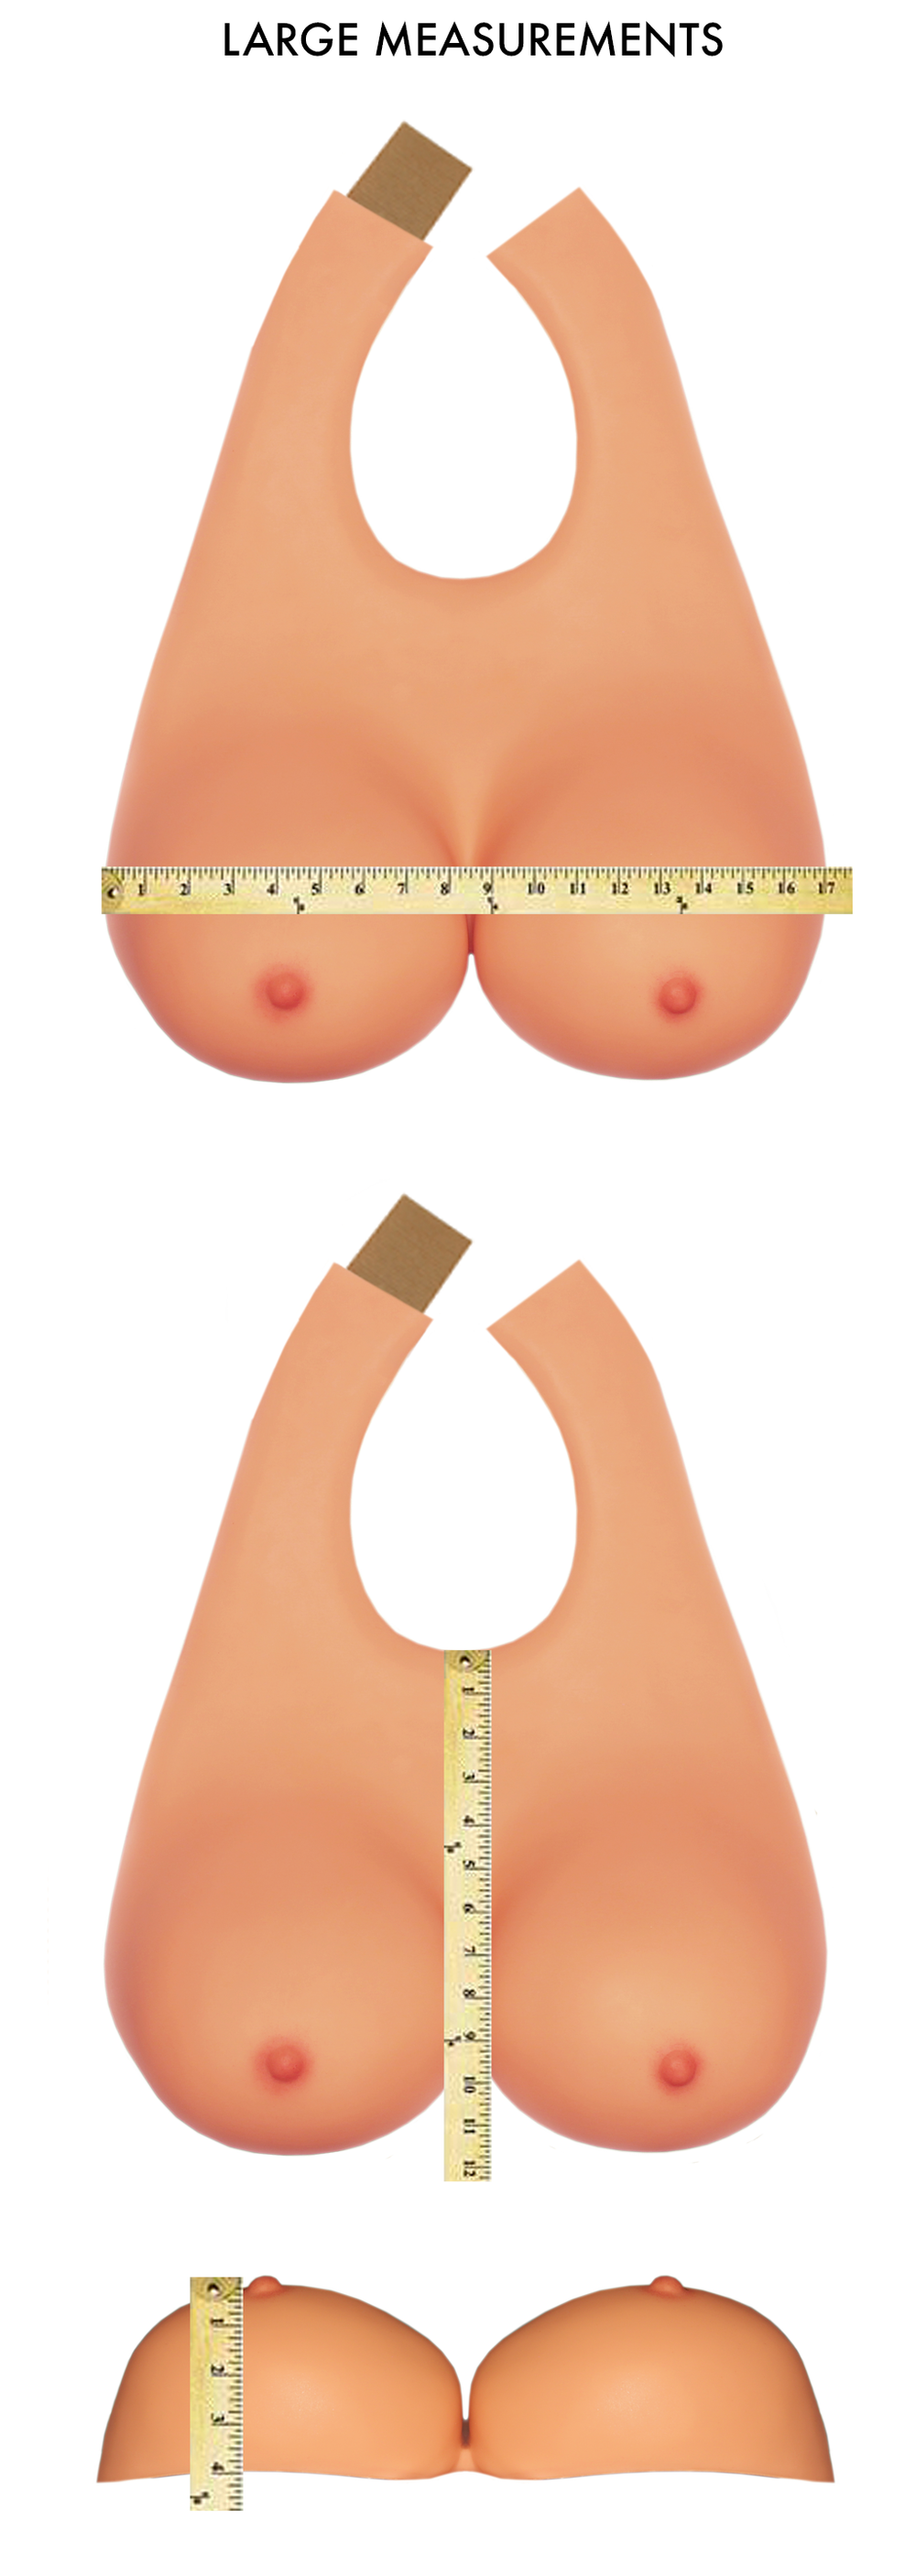 LargeMeasurements-2018-03-19.png